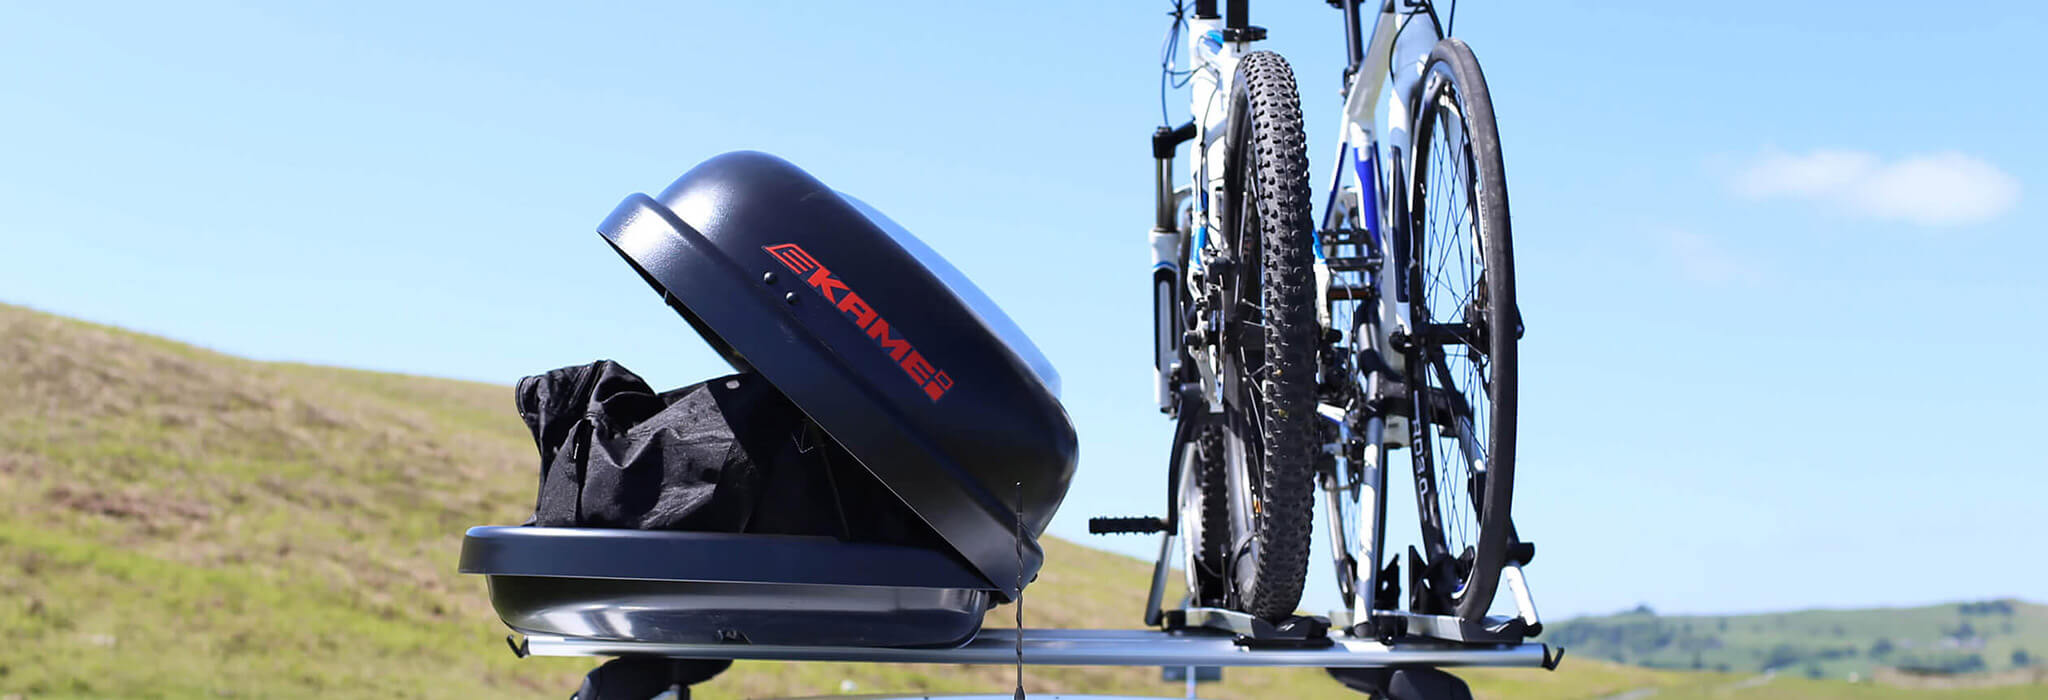 Kamei Husky M Roof Box - with 2 bikes